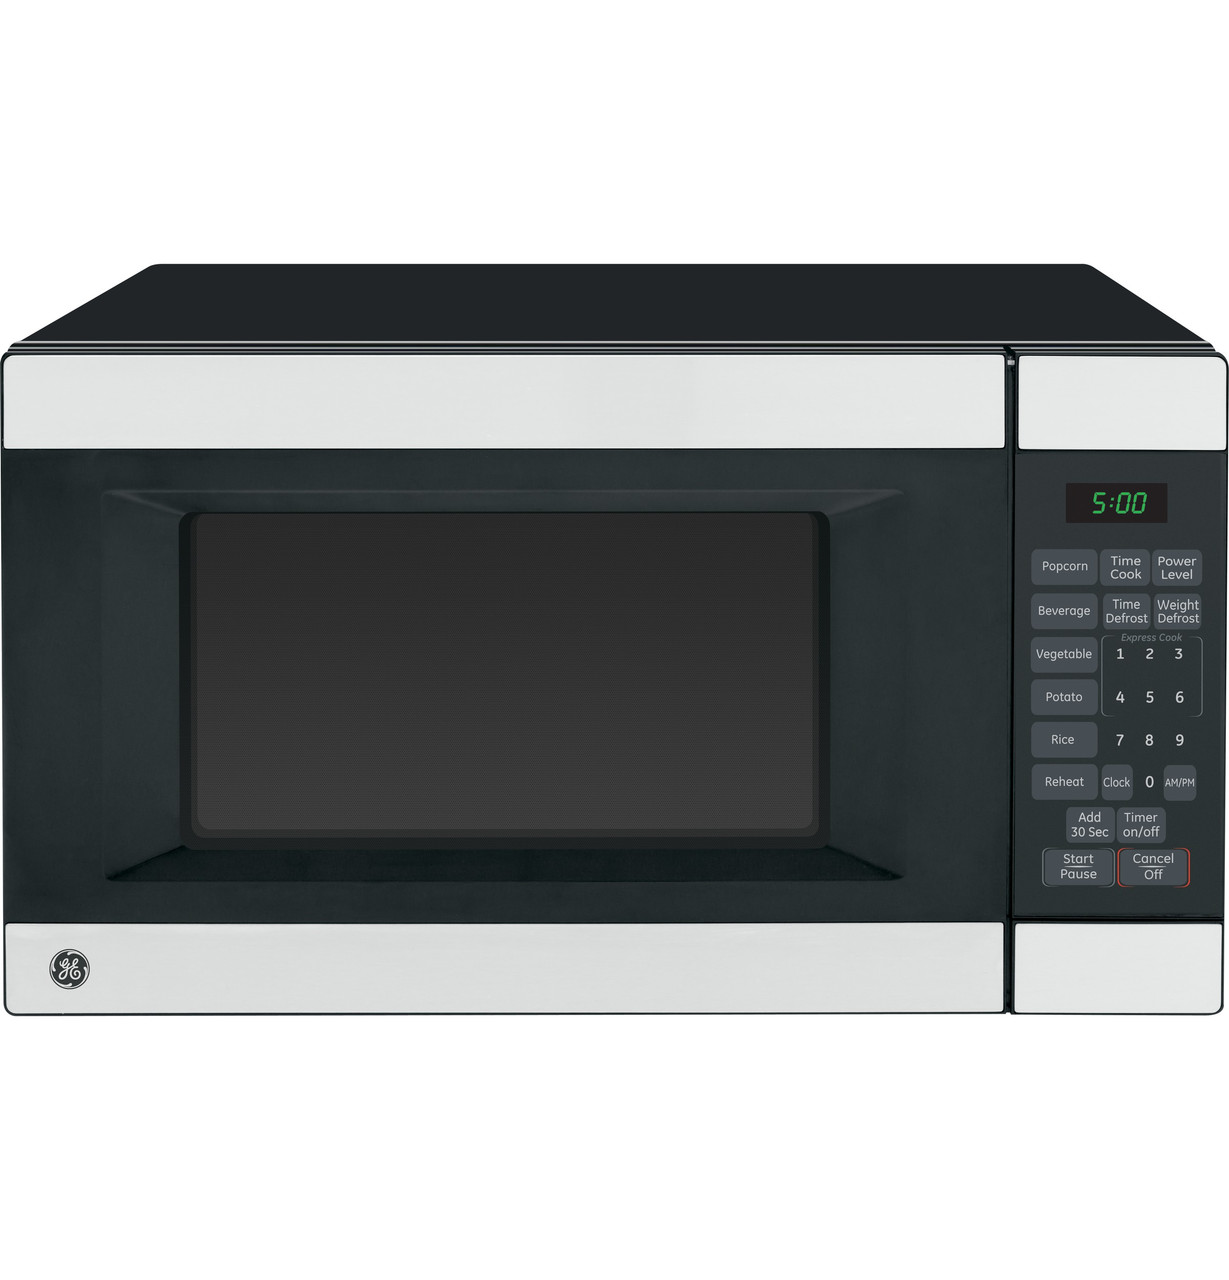 ge 1 4 cu ft countertop microwave oven wes1452ssss